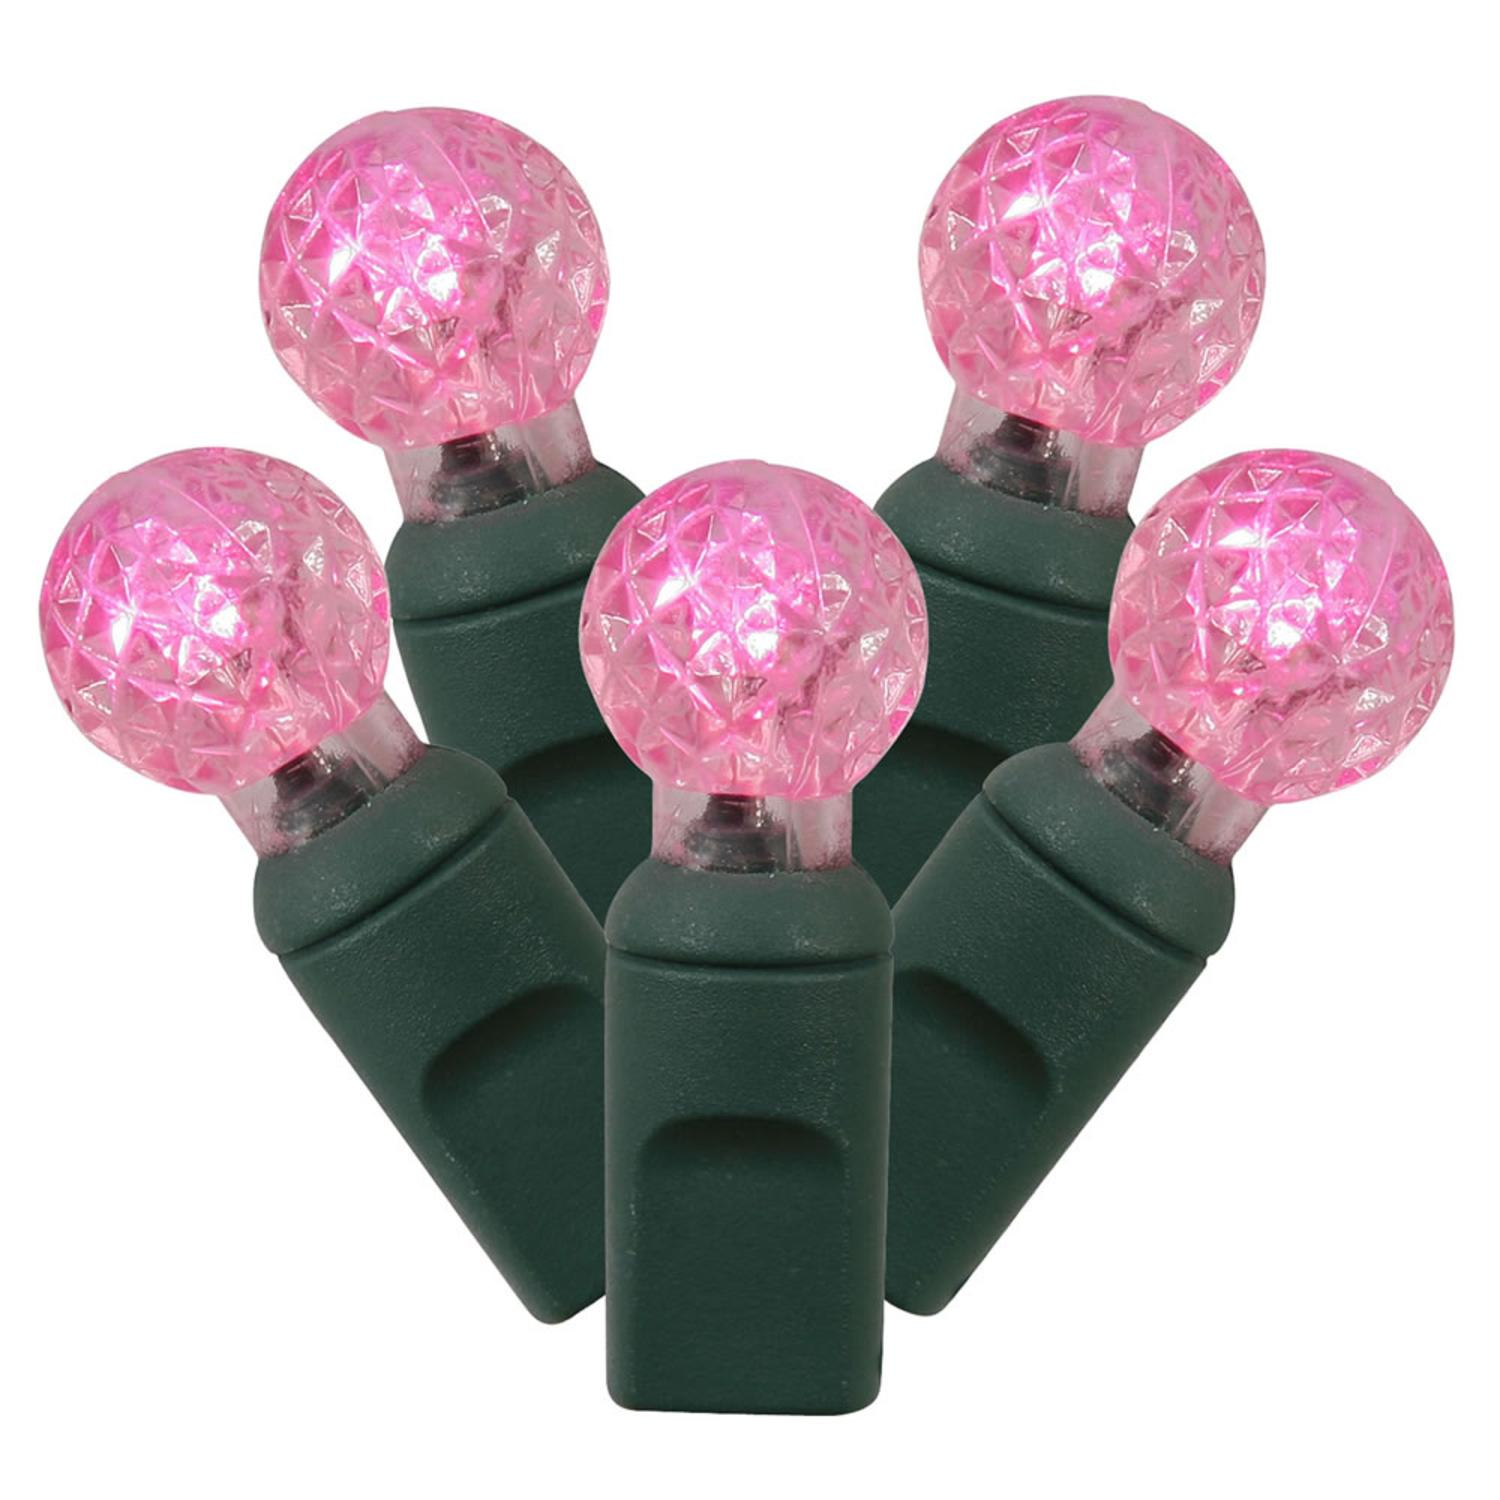 Set of 50 Pink Commercial Grade LED G12 Berry Christmas Lights - Green Wire